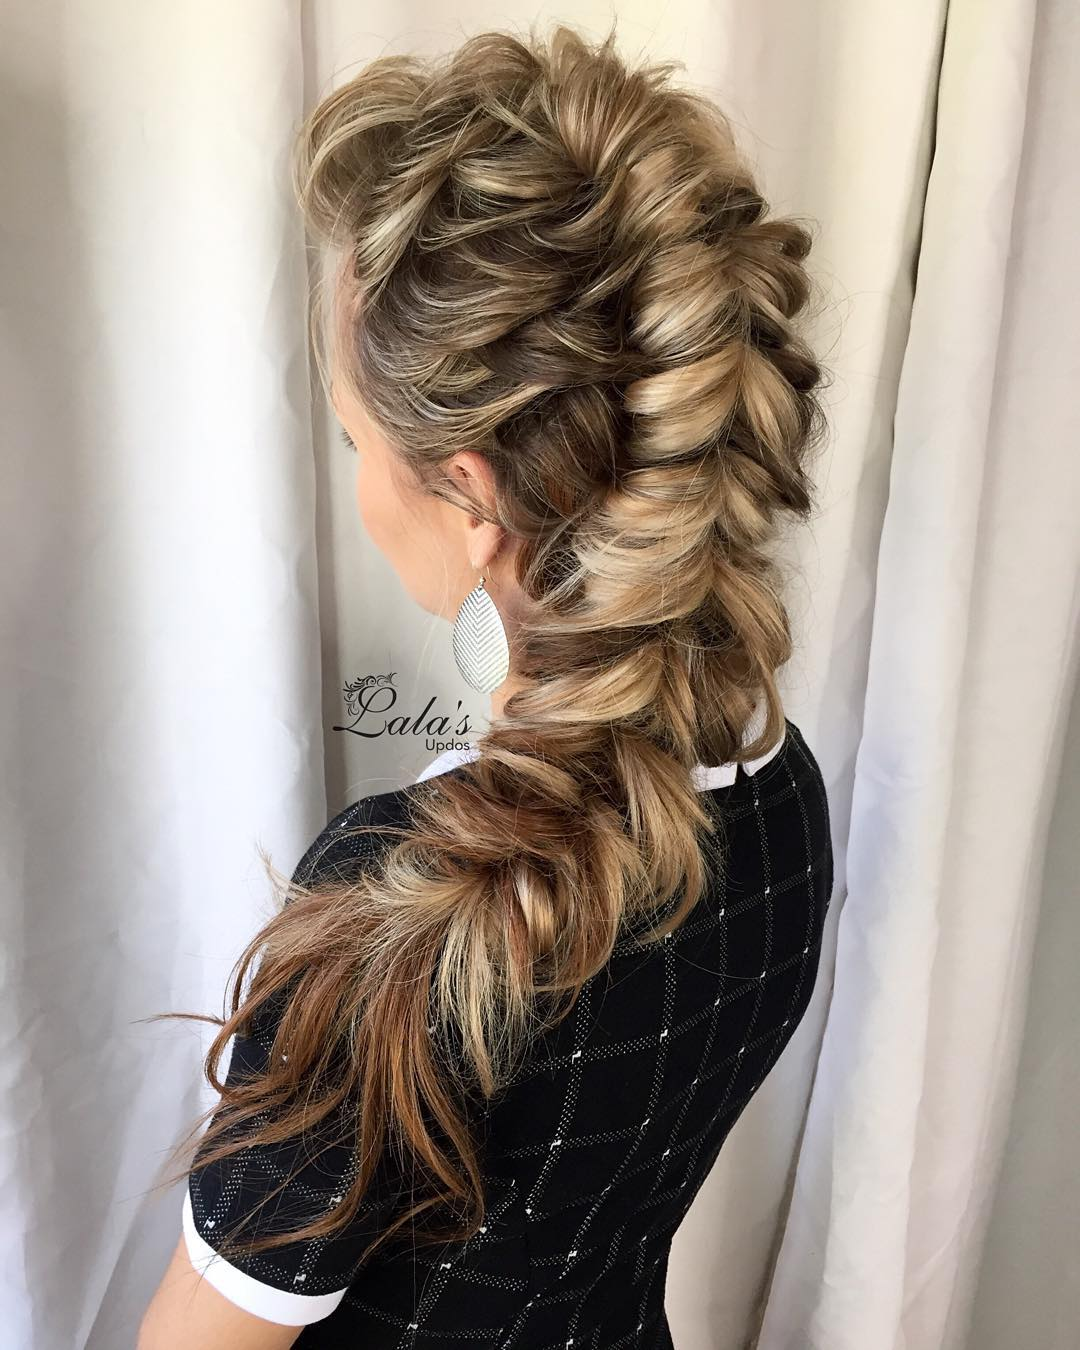 Mohawk Fishtail Braid